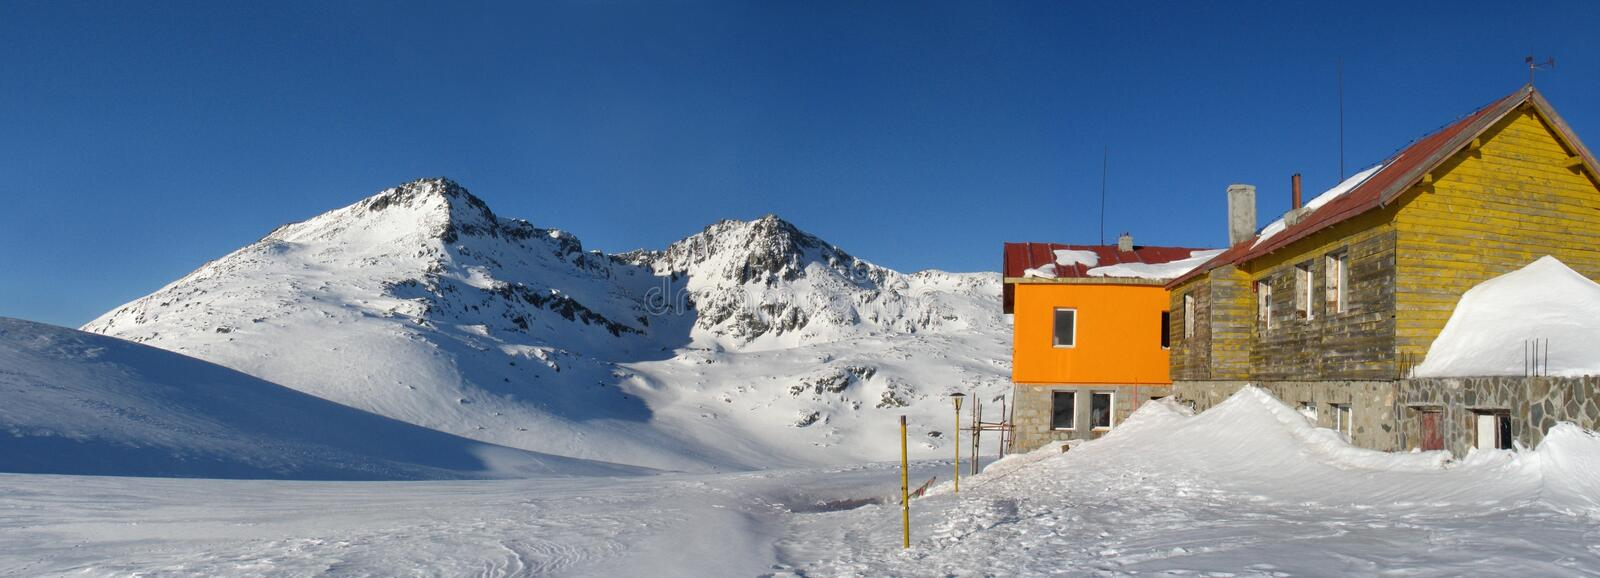 Download Mountain hut in the winter stock image. Image of mountain - 41373893